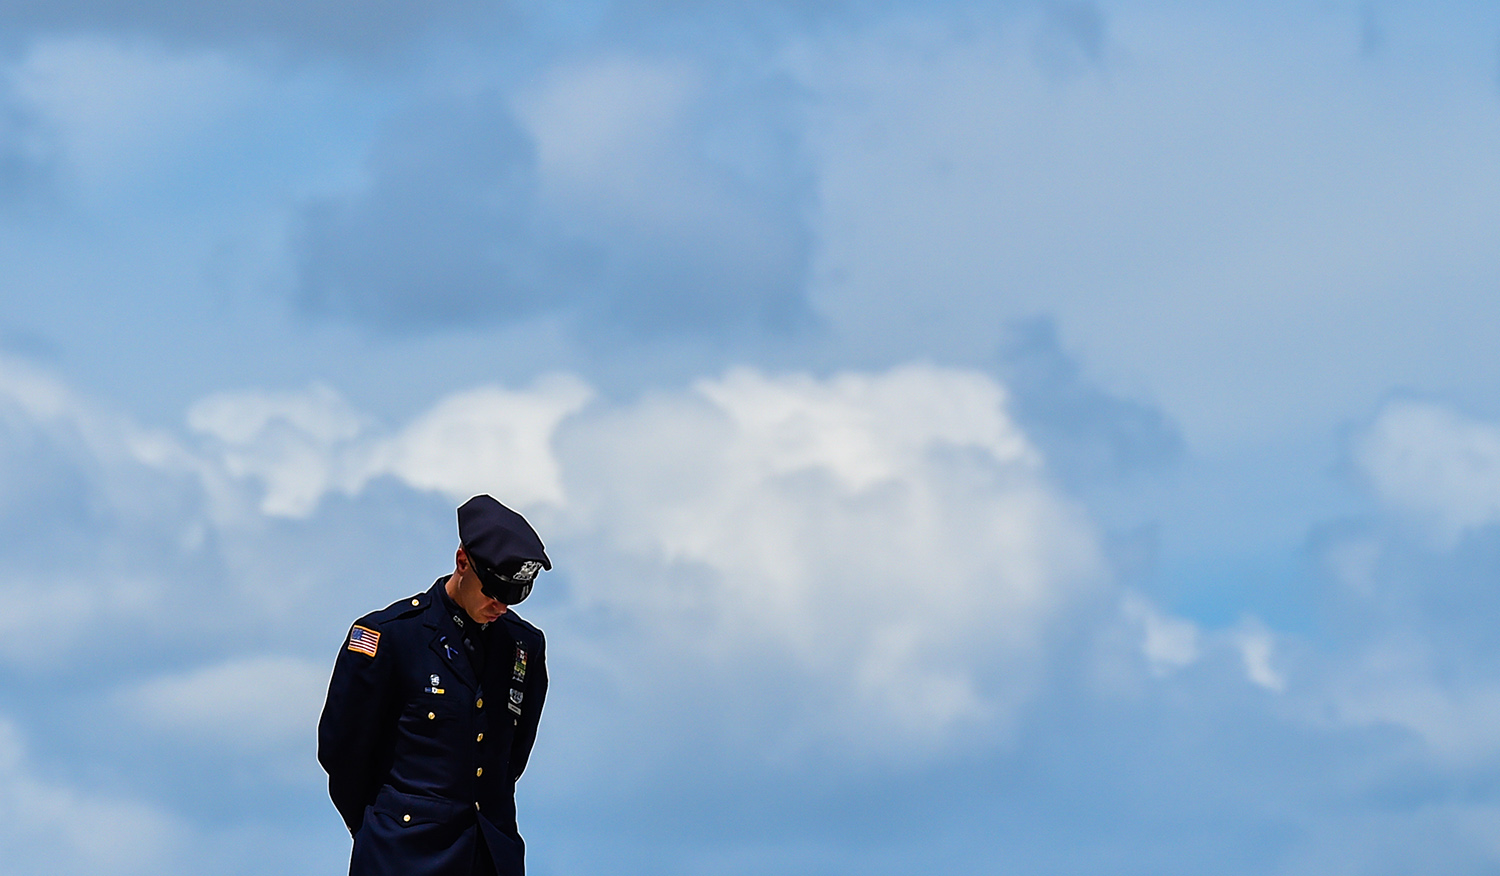 A police officer bows his head during funeral services for slain San Antonio Police Officer Miguel Moreno, in San Antonio on July 7, 2017.